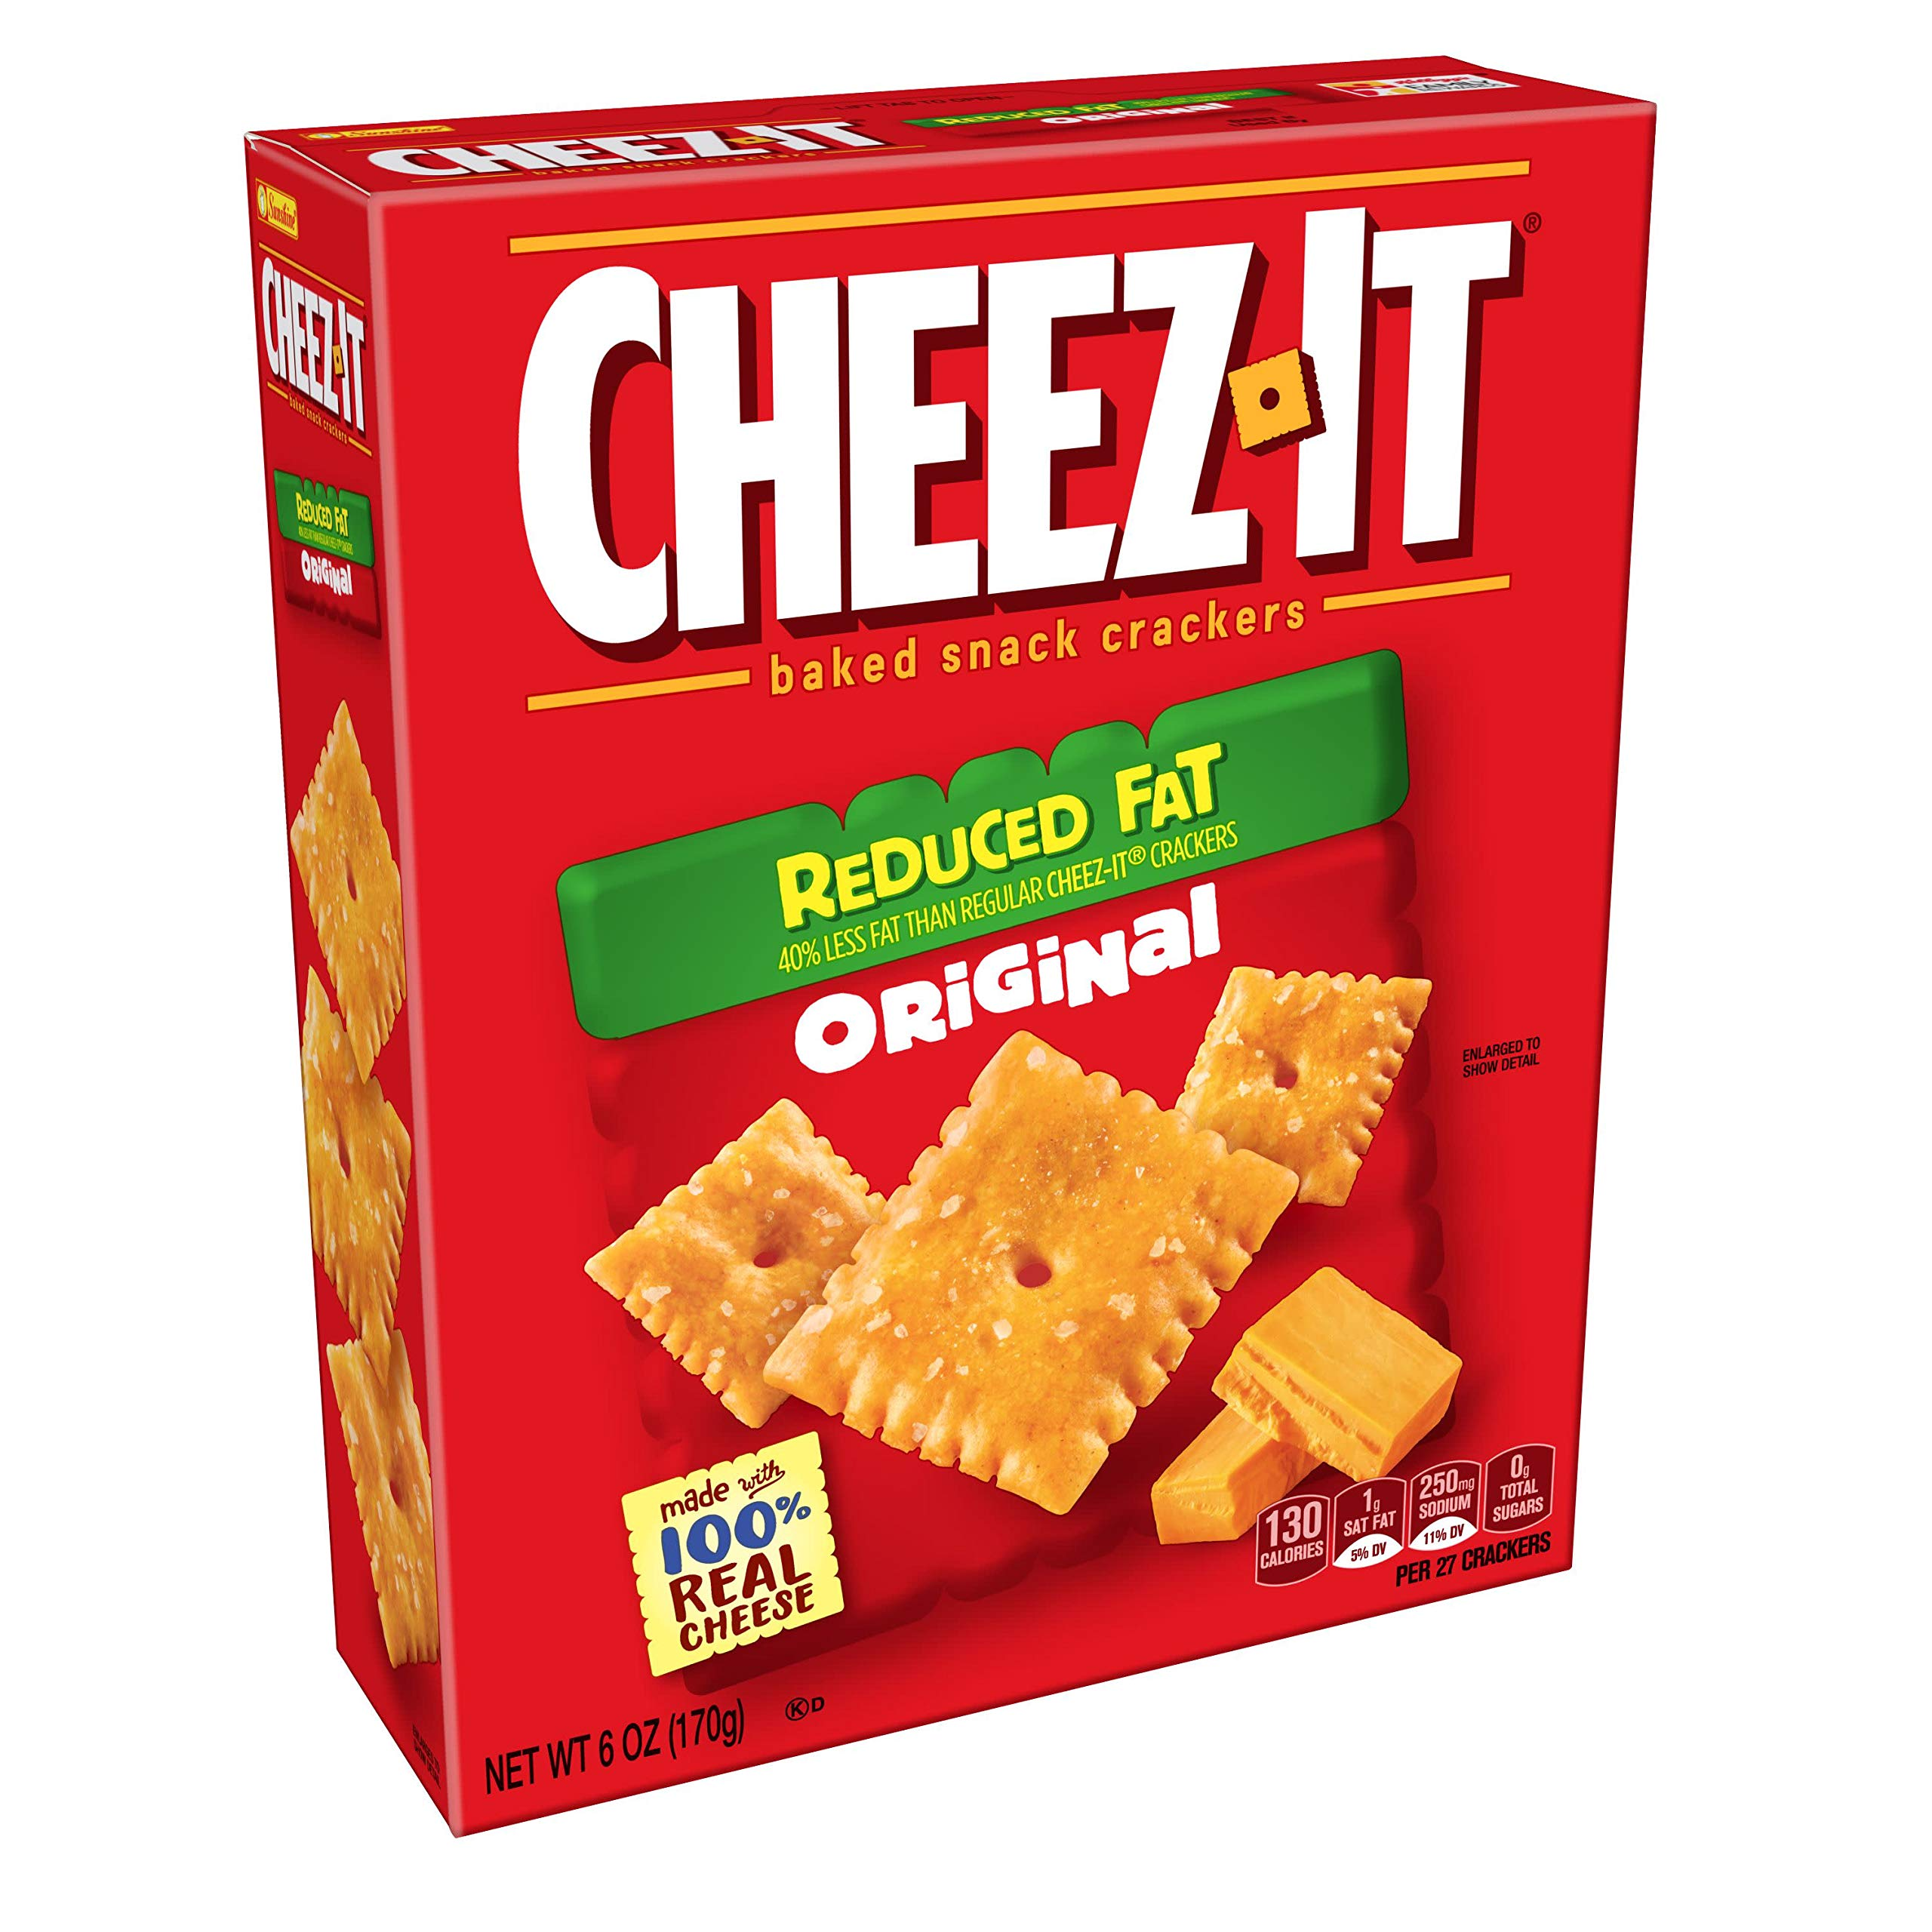 Cheez-It Baked Snack Cheese Crackers, Reduced Fat, Original, 6 oz Box(Pack of 12) by Cheez-It (Image #10)